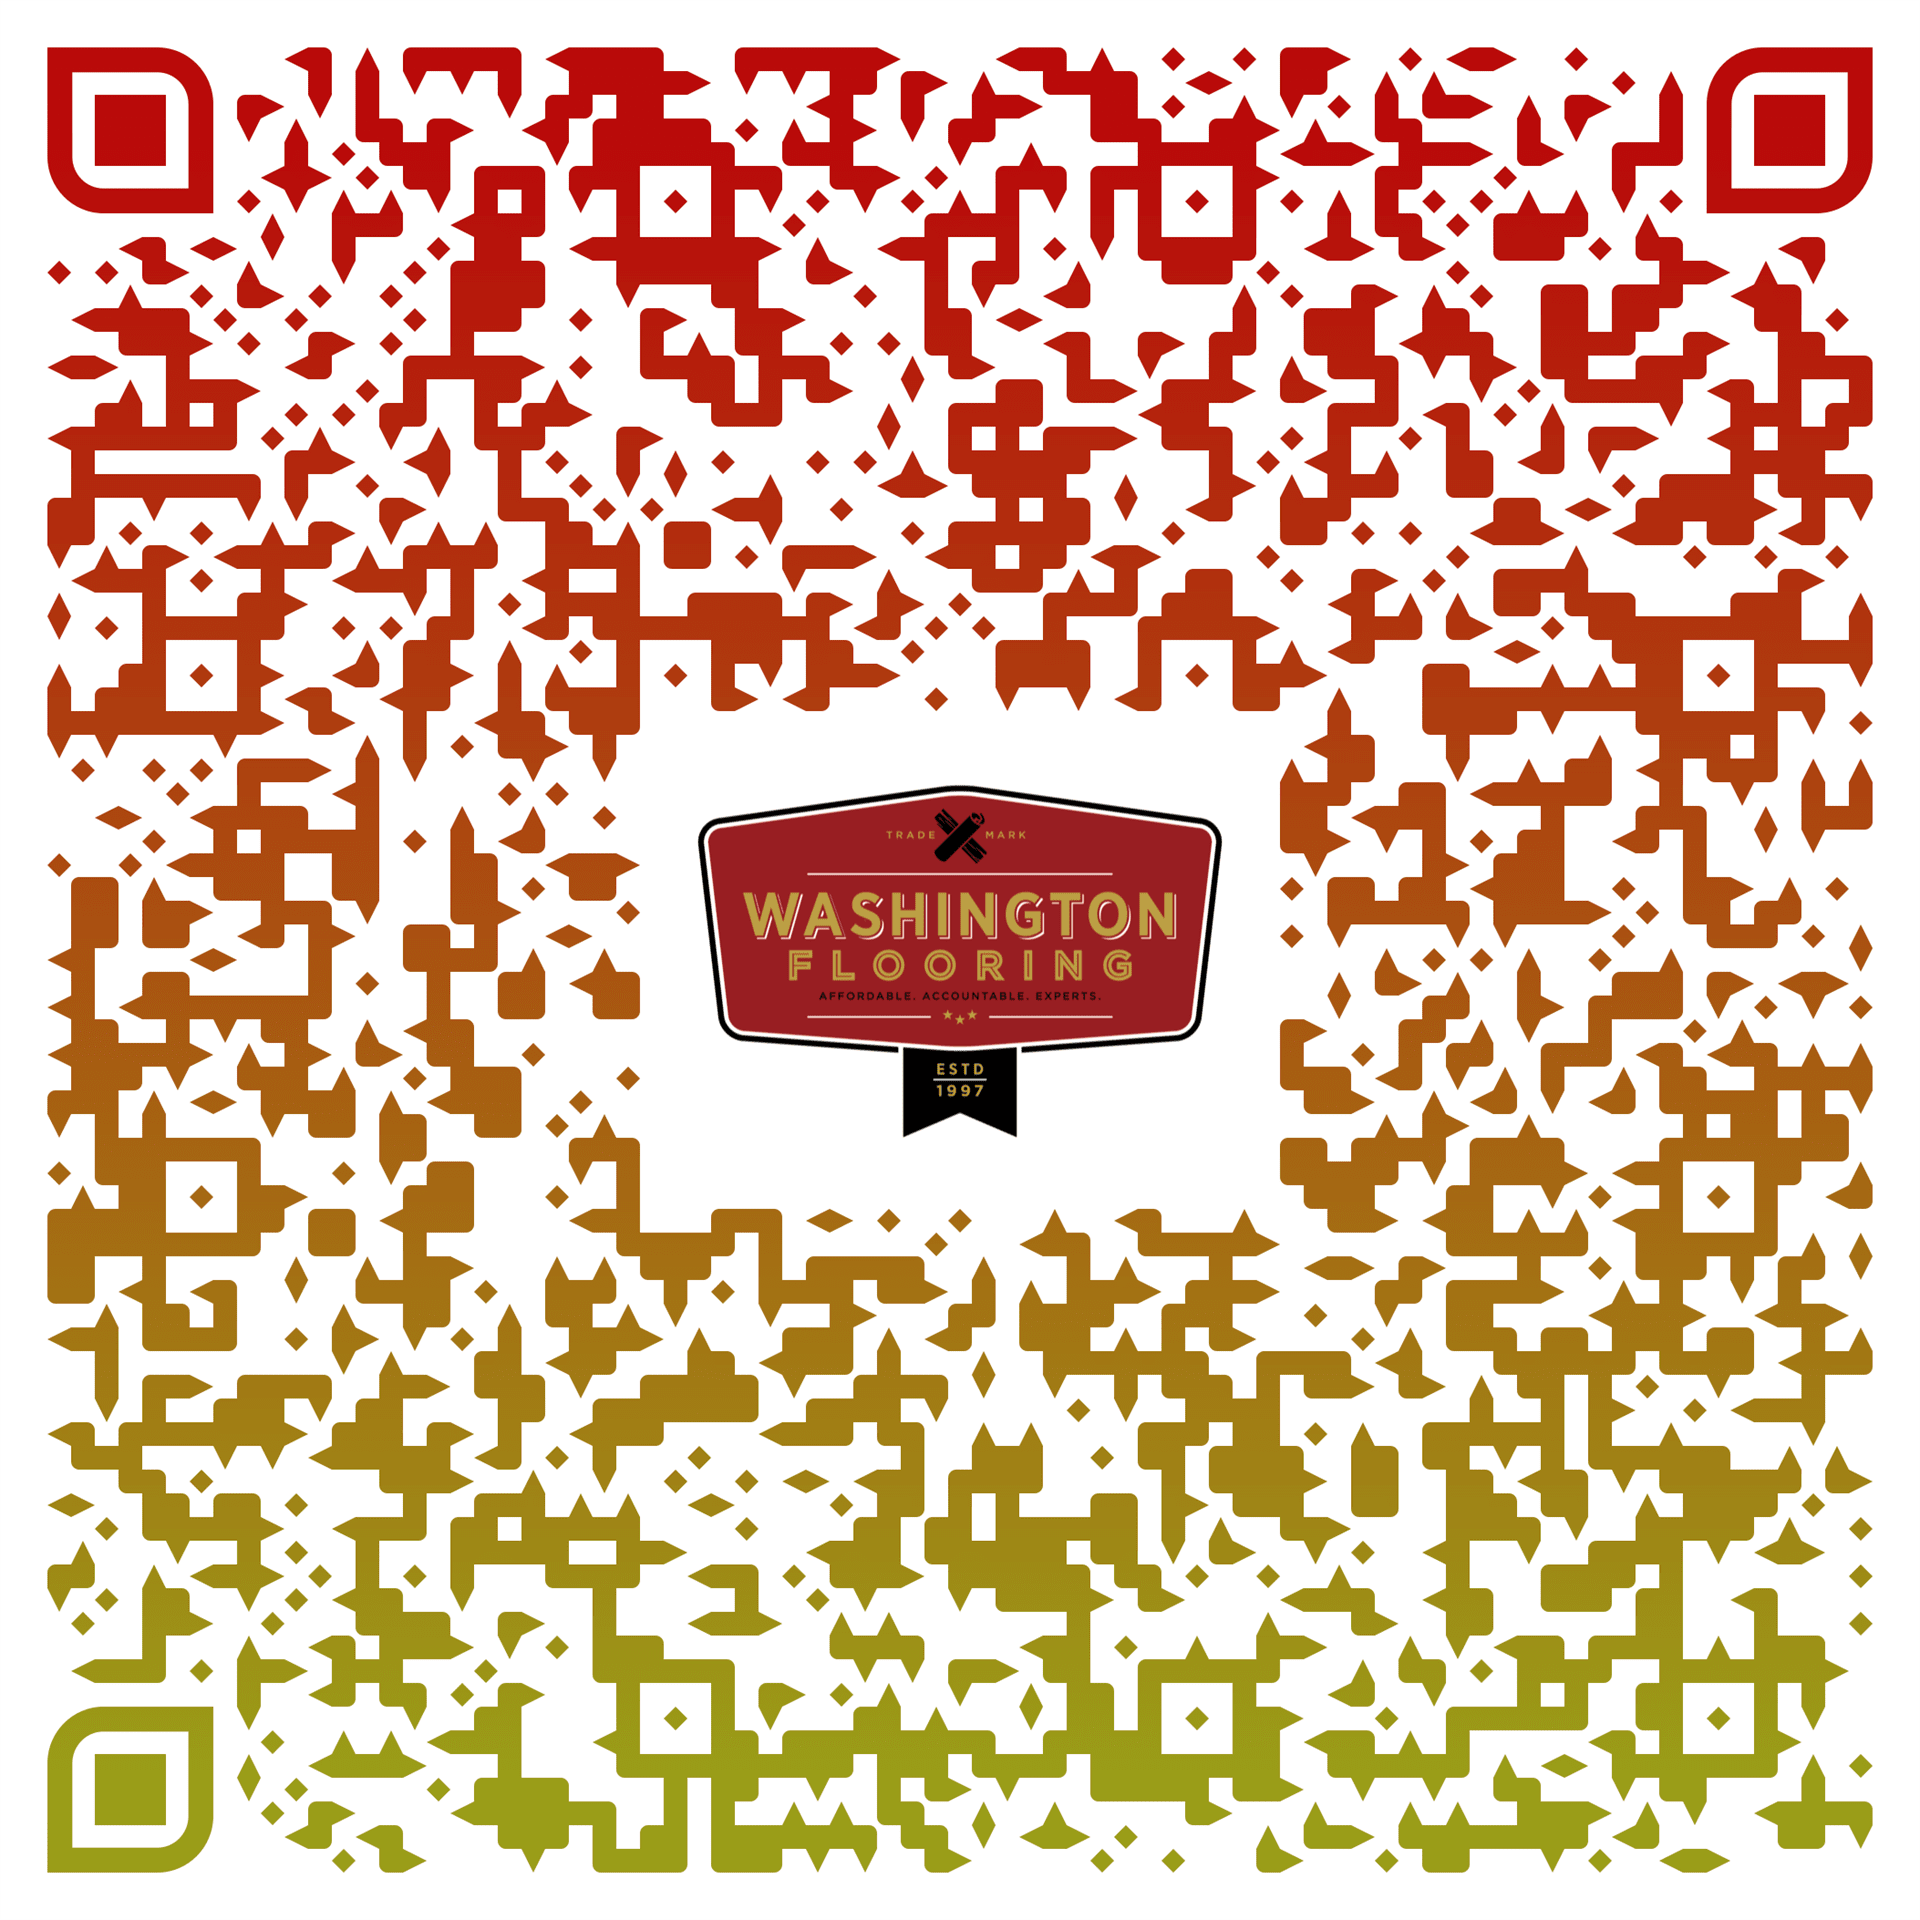 2019 Washington Flooring CV card QR code